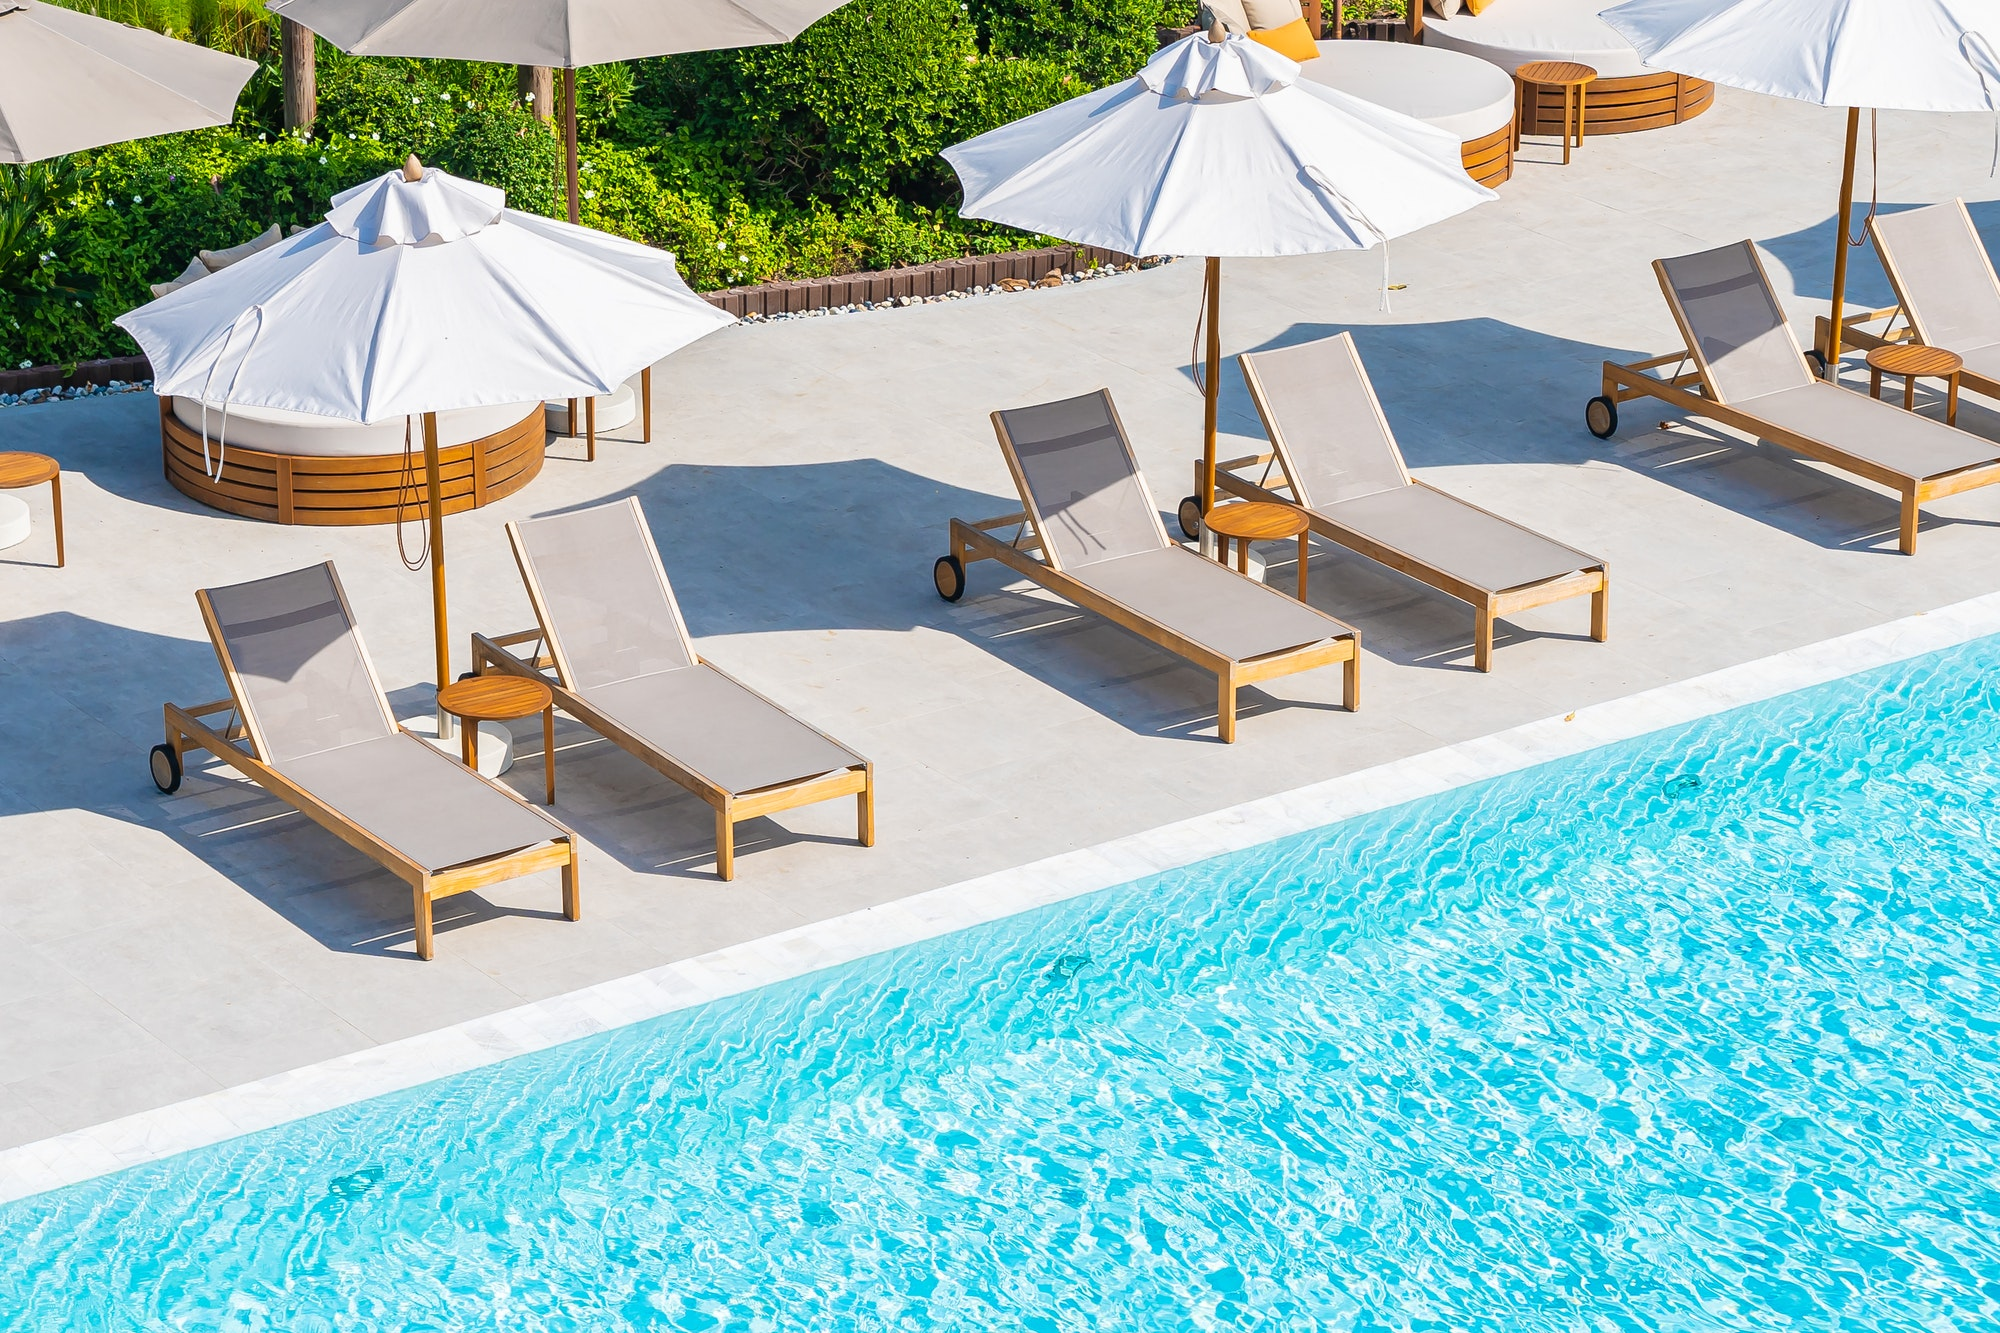 Umbrella and deck chair around outdoor swimming pool in hotel resort